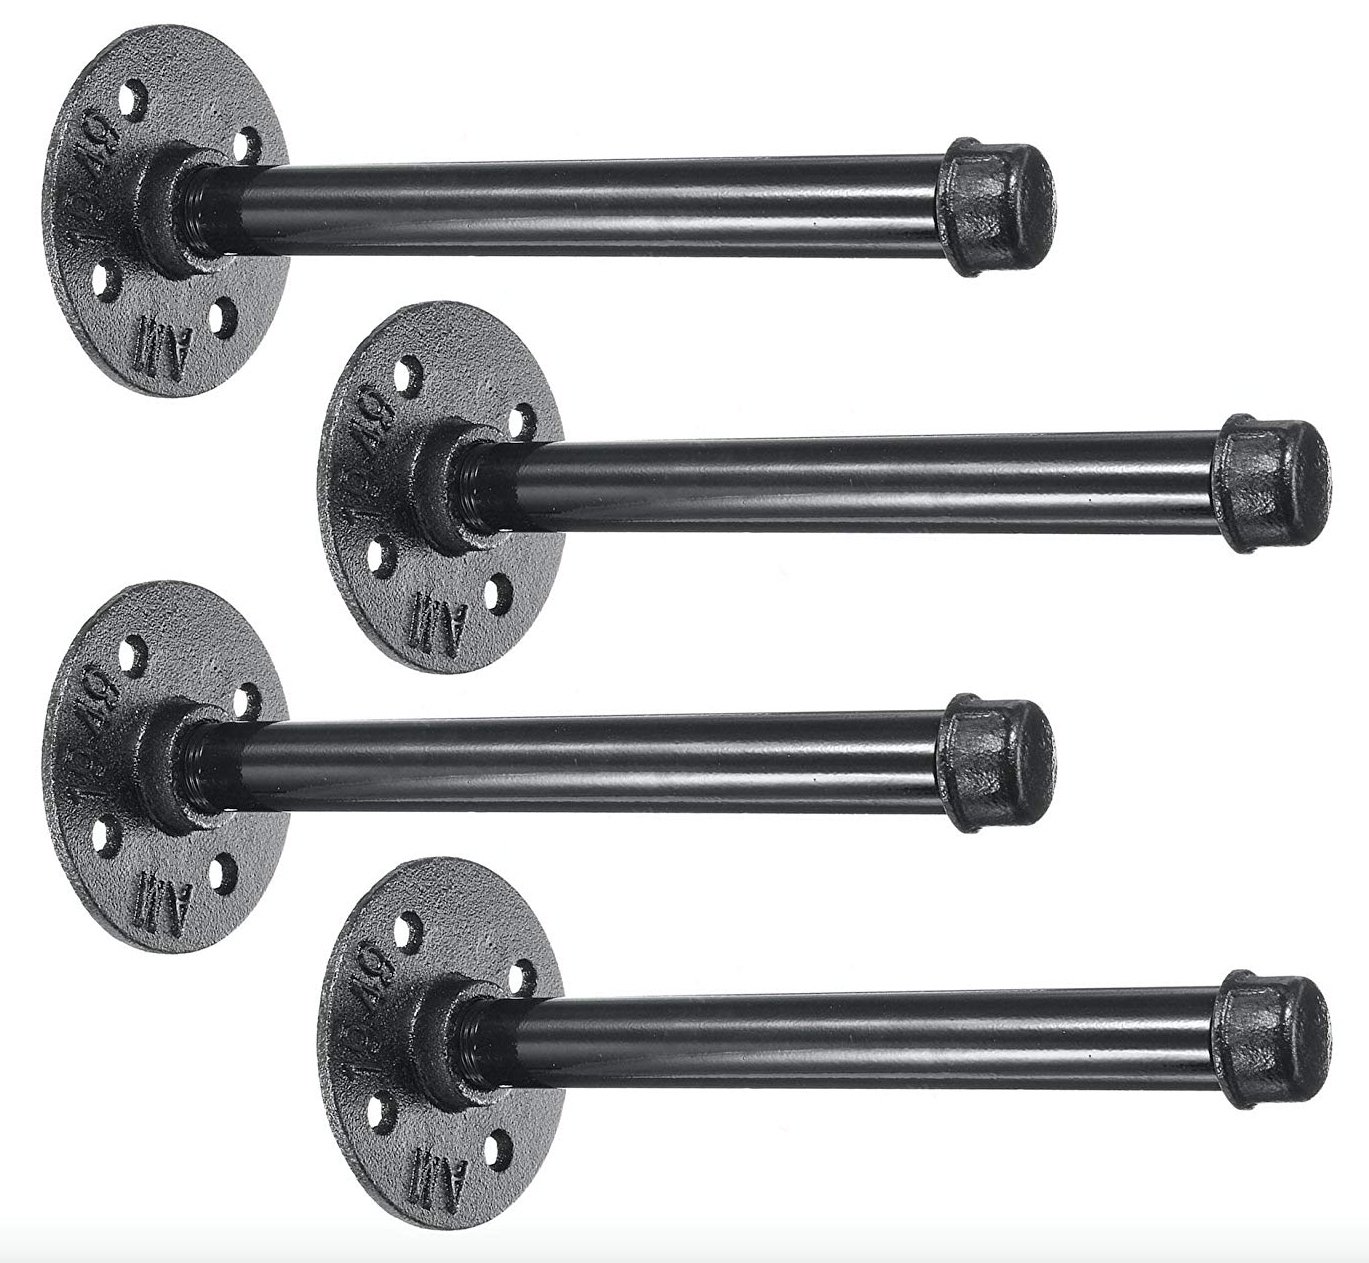 """4 Pack 10"""" Iron Pipe Shelf Mounting Brackets Industrial Black Steel Iron Straight Shelves - DIY Rustic/Chic and Vintage Decor Floating Shelves Complete Display Set ½ Inch Flange - by NODNAL Co."""